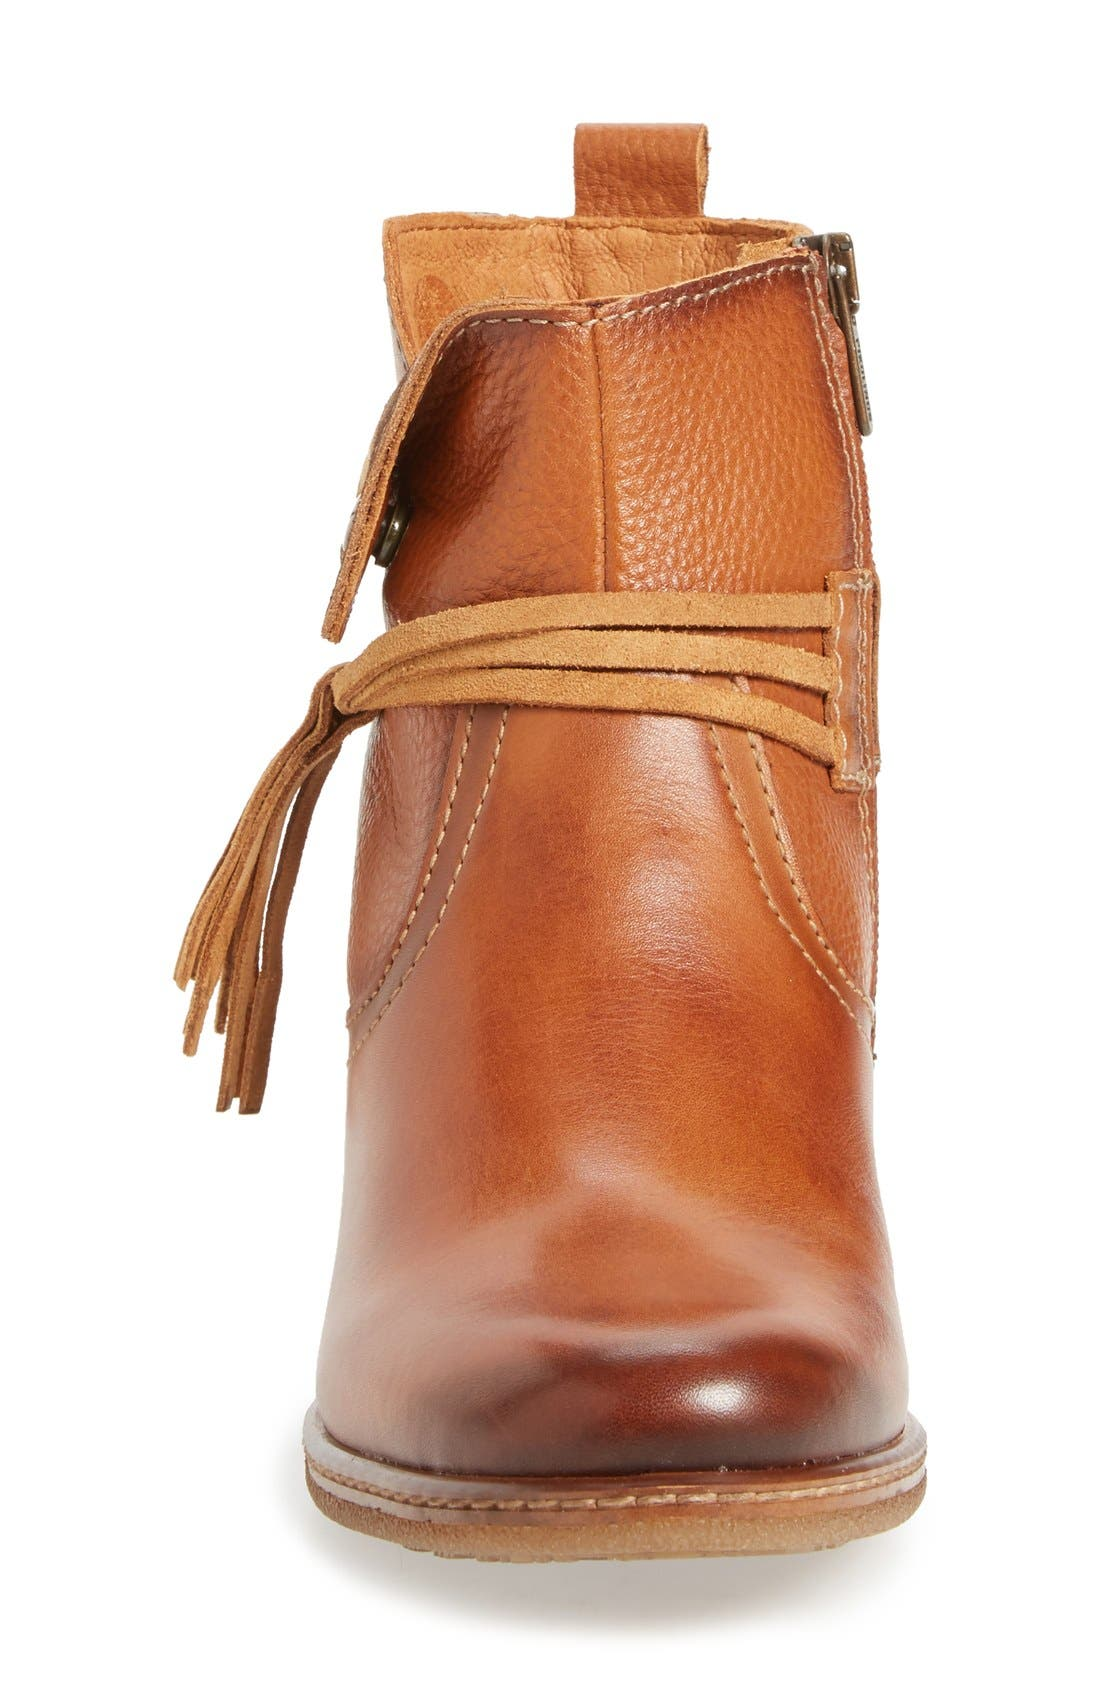 'Zaragoza' Bootie,                             Alternate thumbnail 3, color,                             Brandy Leather